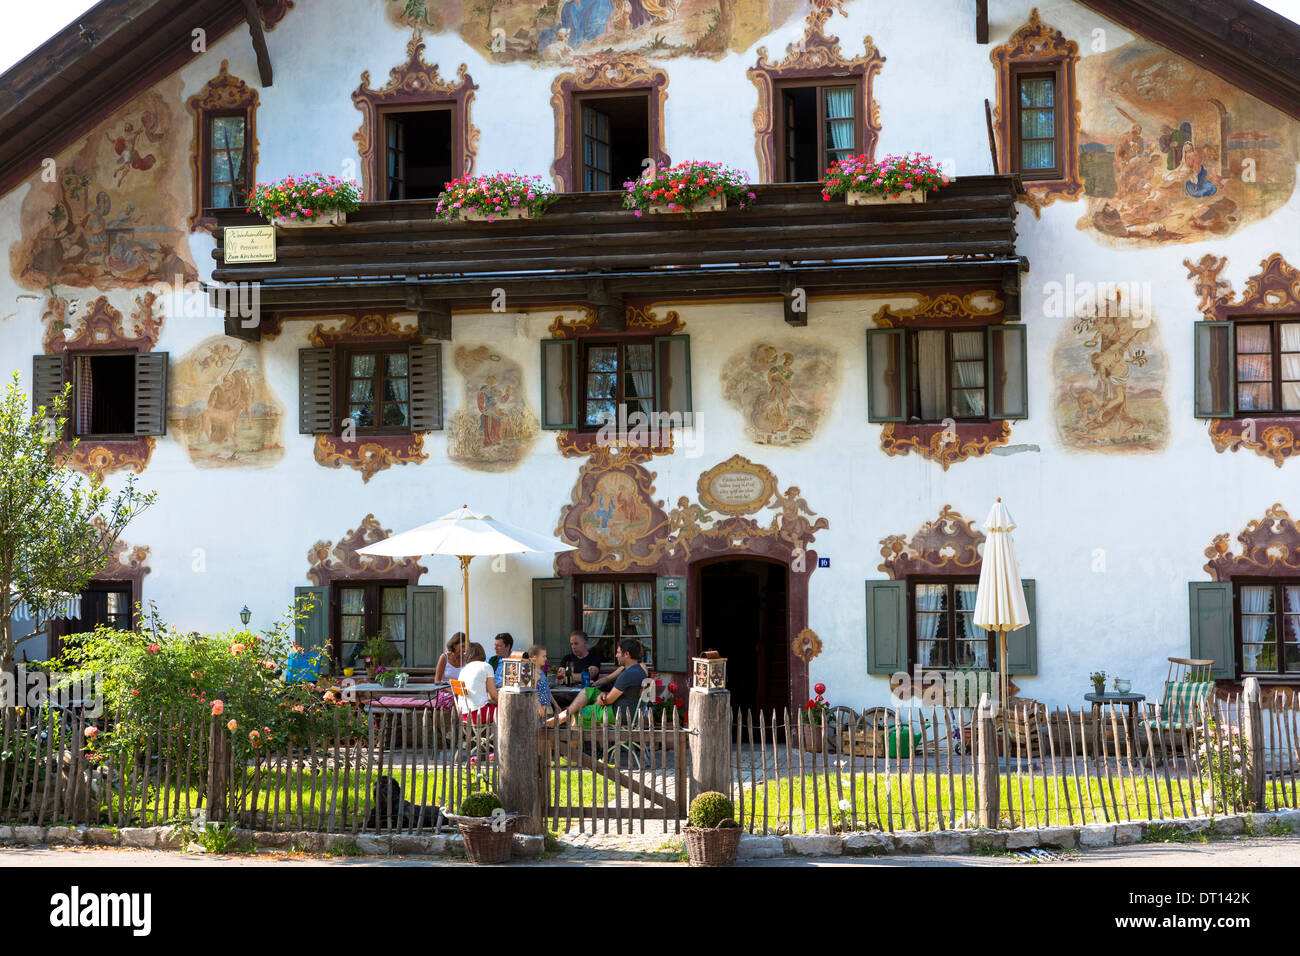 Religious painting on Beim Kirchenbauer pension and wine estate in village of Oberammergau in Upper Bavaria, Germany - Stock Image